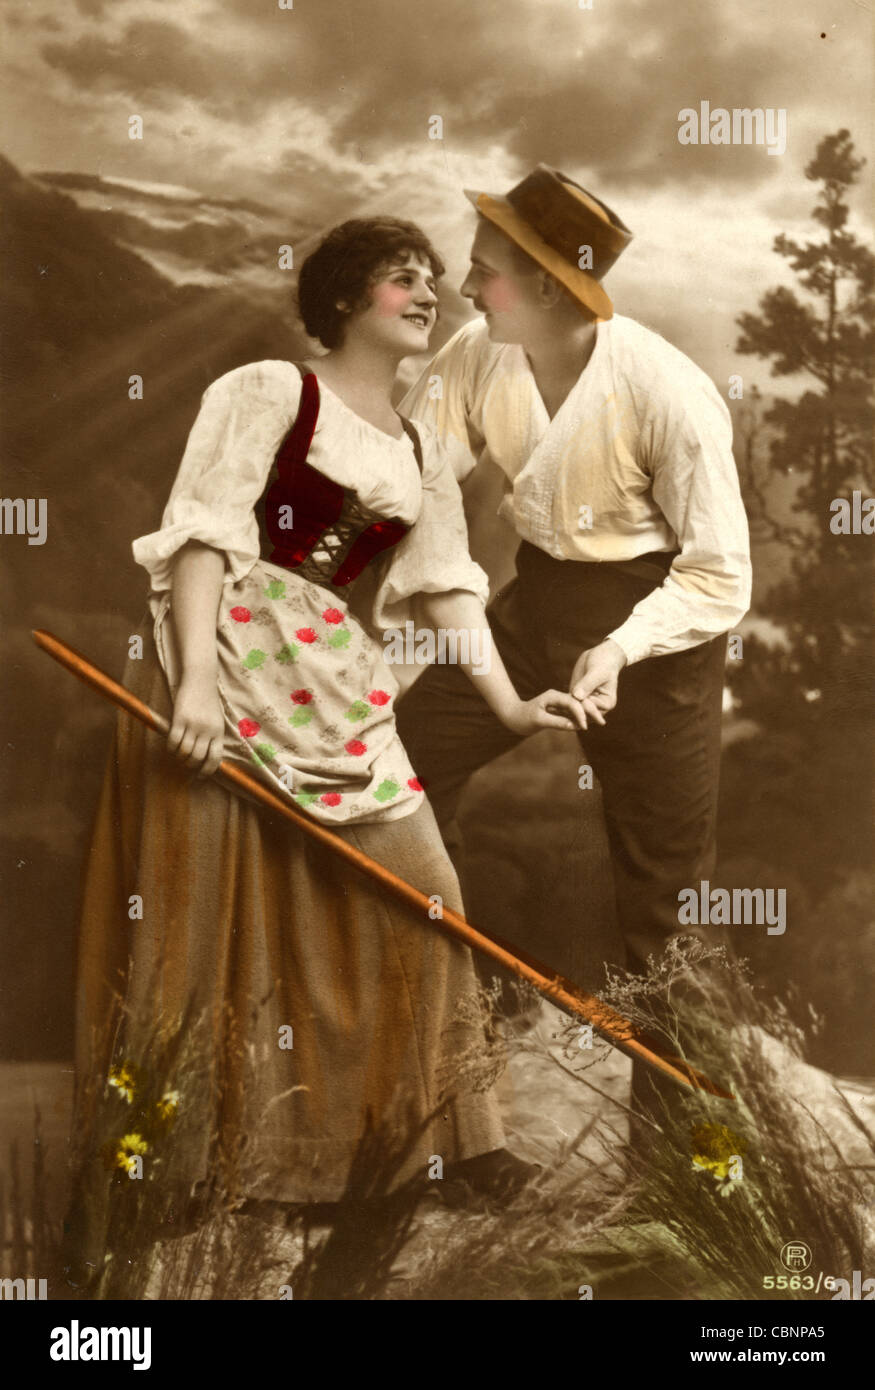 Attractive Young Peasant Couple in the Alps - Stock Image